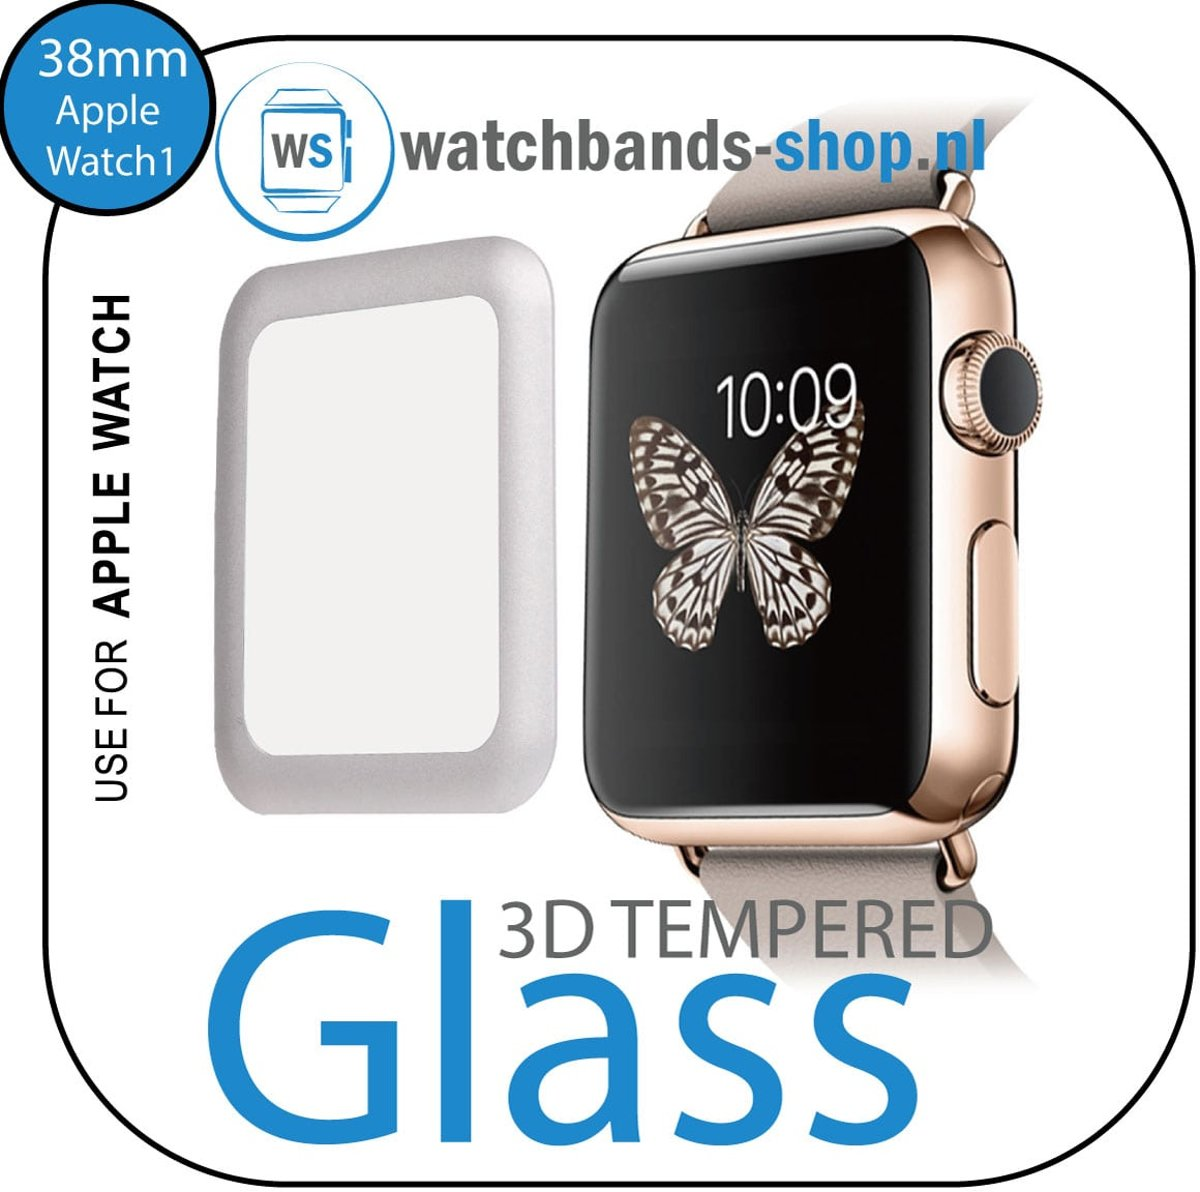 38mm full Cover 3D Tempered Glass Screen Protector For Apple watch / iWatch 1 silver edge Watchbands-shop.nl kopen